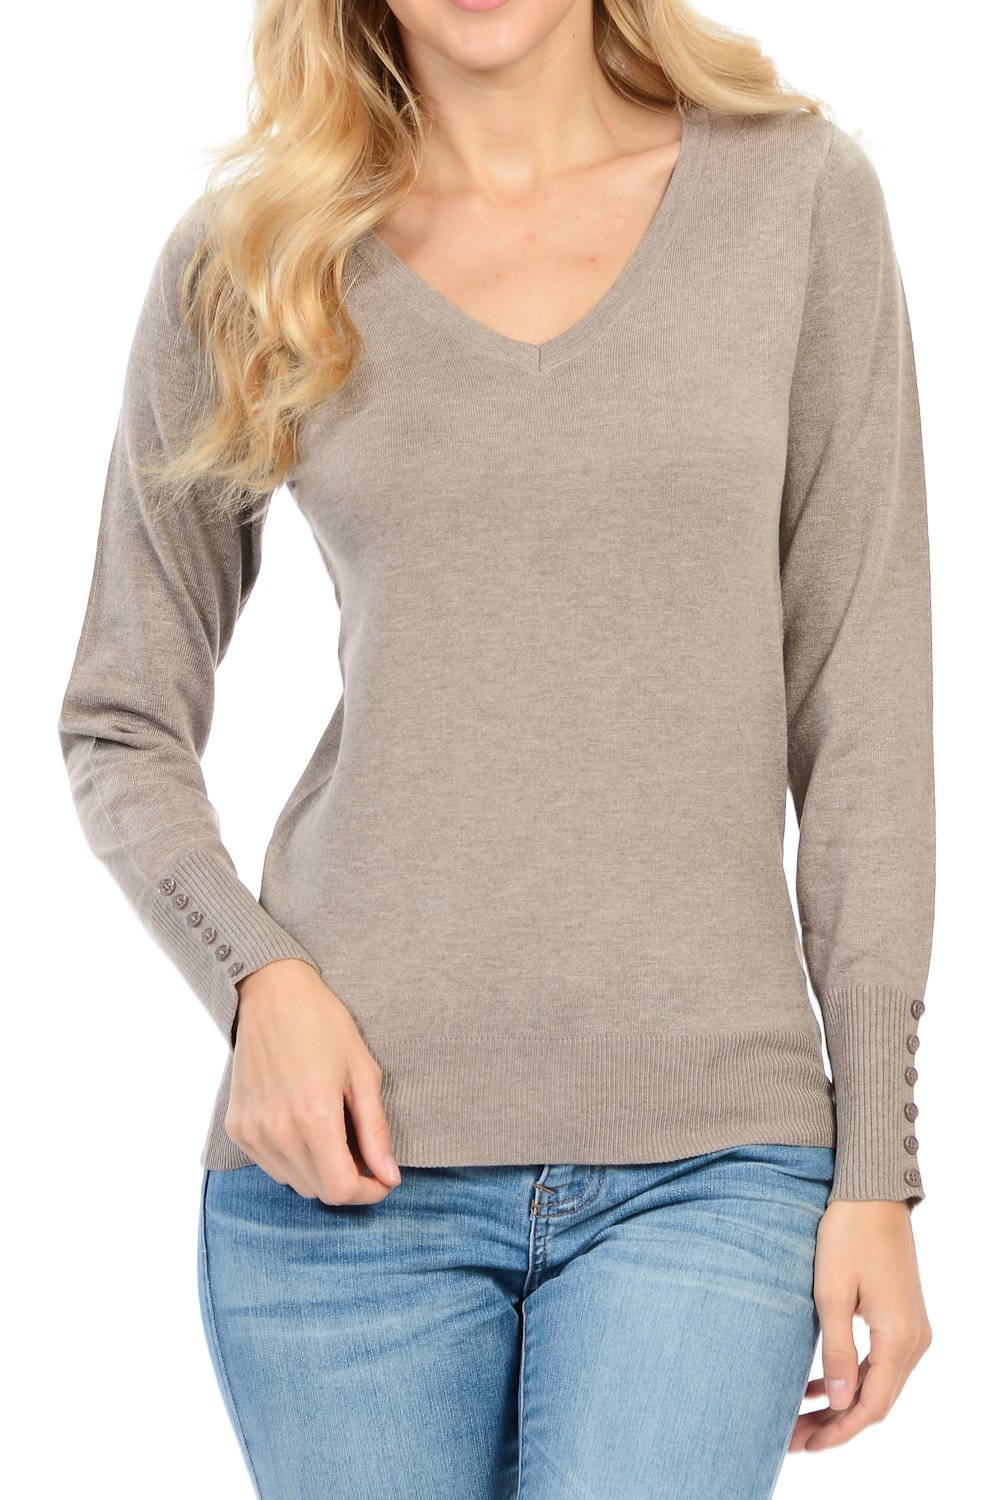 YourStyle Long Sleeve Classic Sweater-Turtle Neck/V-Neck/Crew Neck S-XL (Small, V65-H.Taupe)